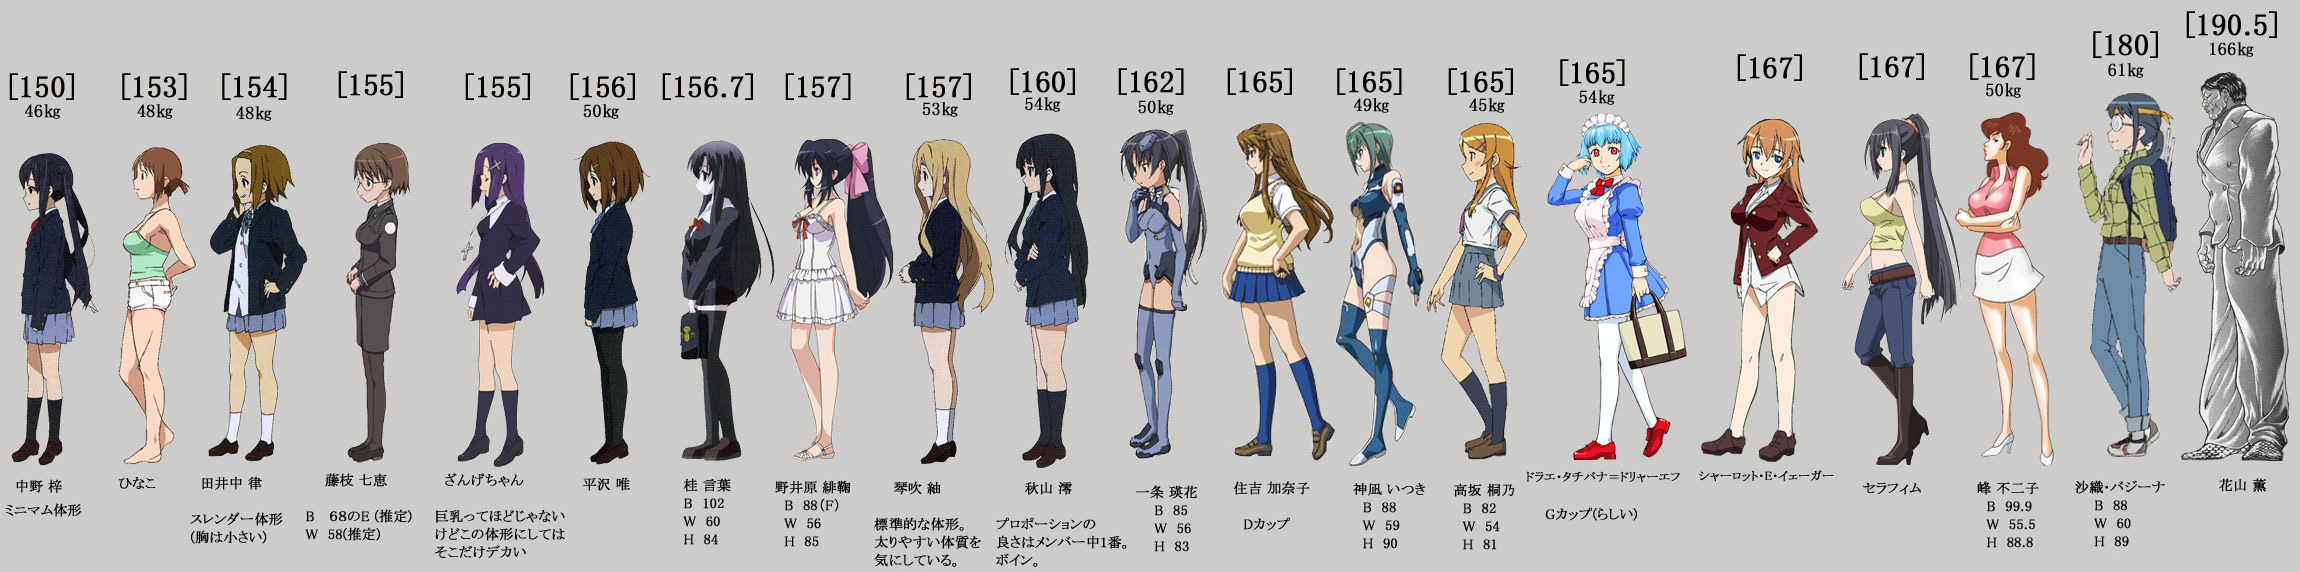 Moe female anime characters height comparison chart otaku tale for various female anime and male characters nvjuhfo Choice Image